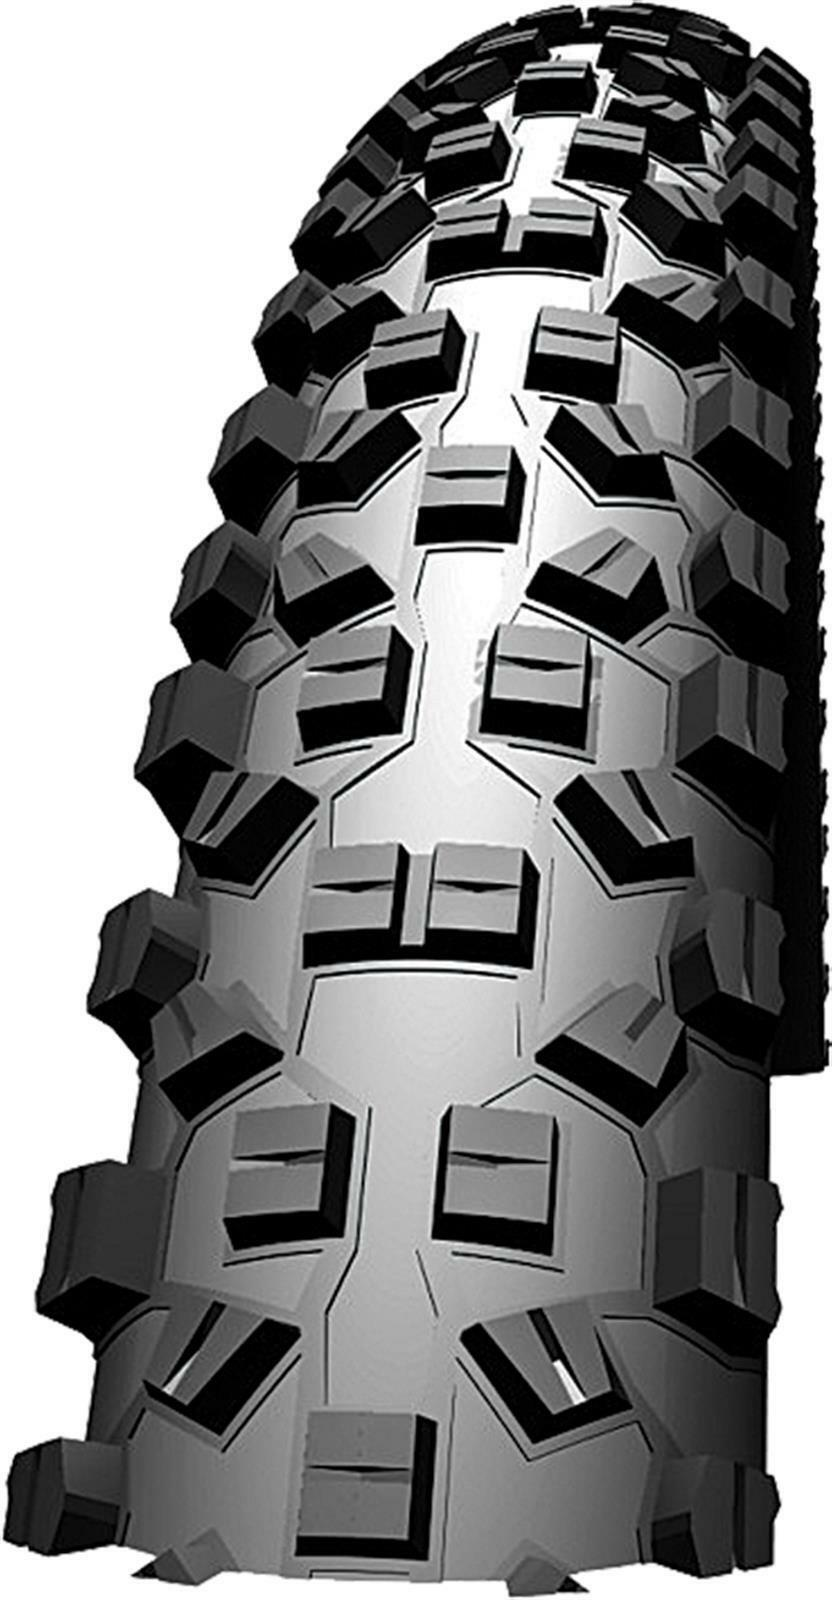 SCHWALBE HANS DAMPF  SNAKESKIN 650BX 2.35 TL-READY  FOLDING 11600396.01  not to be missed!